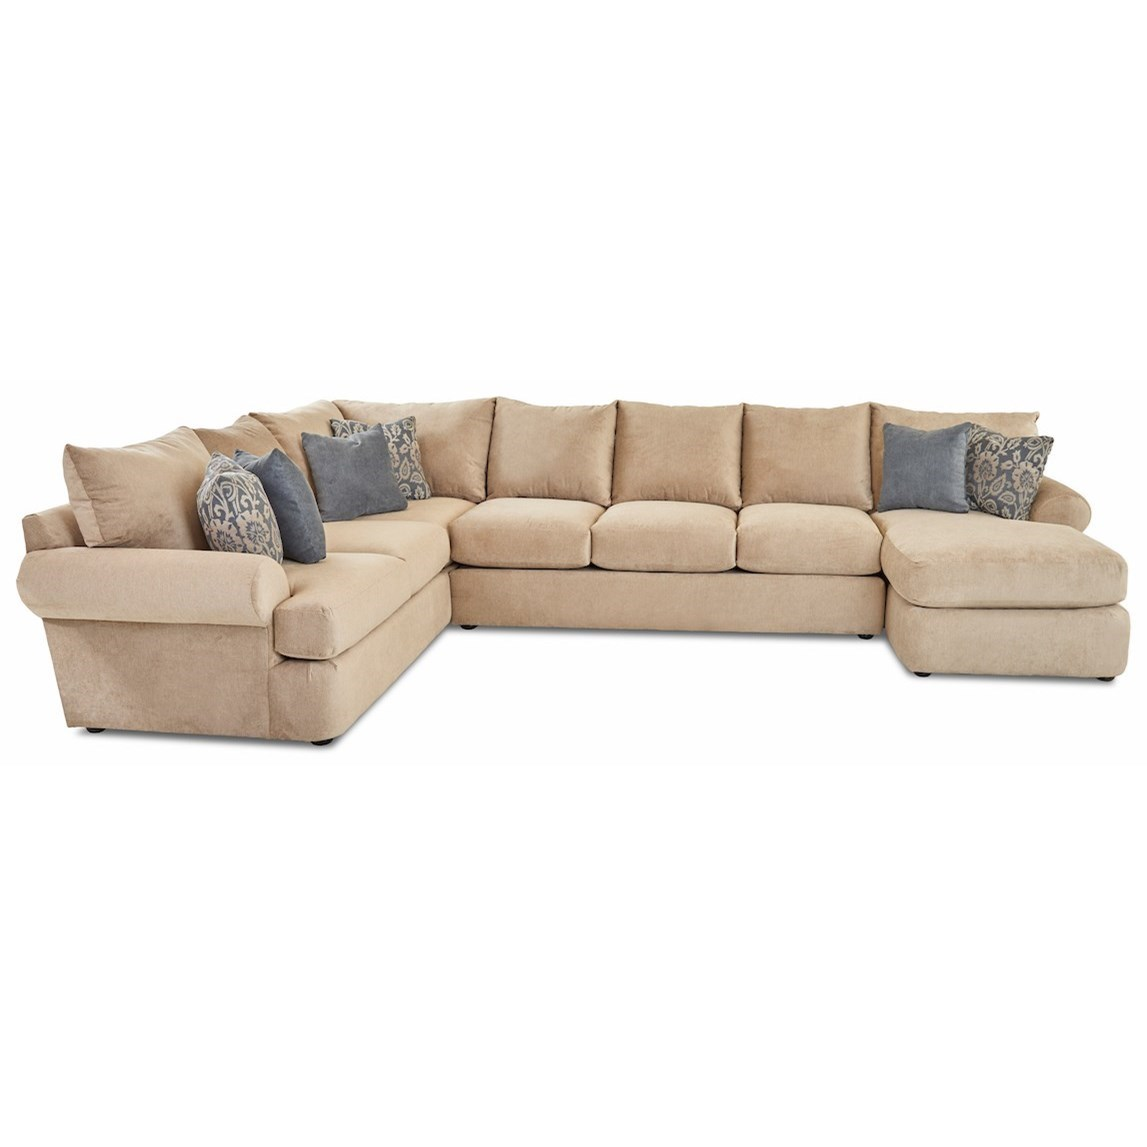 Cora 3-Piece Sectional Sofa w/ RAF Chaise by Klaussner at Johnny Janosik